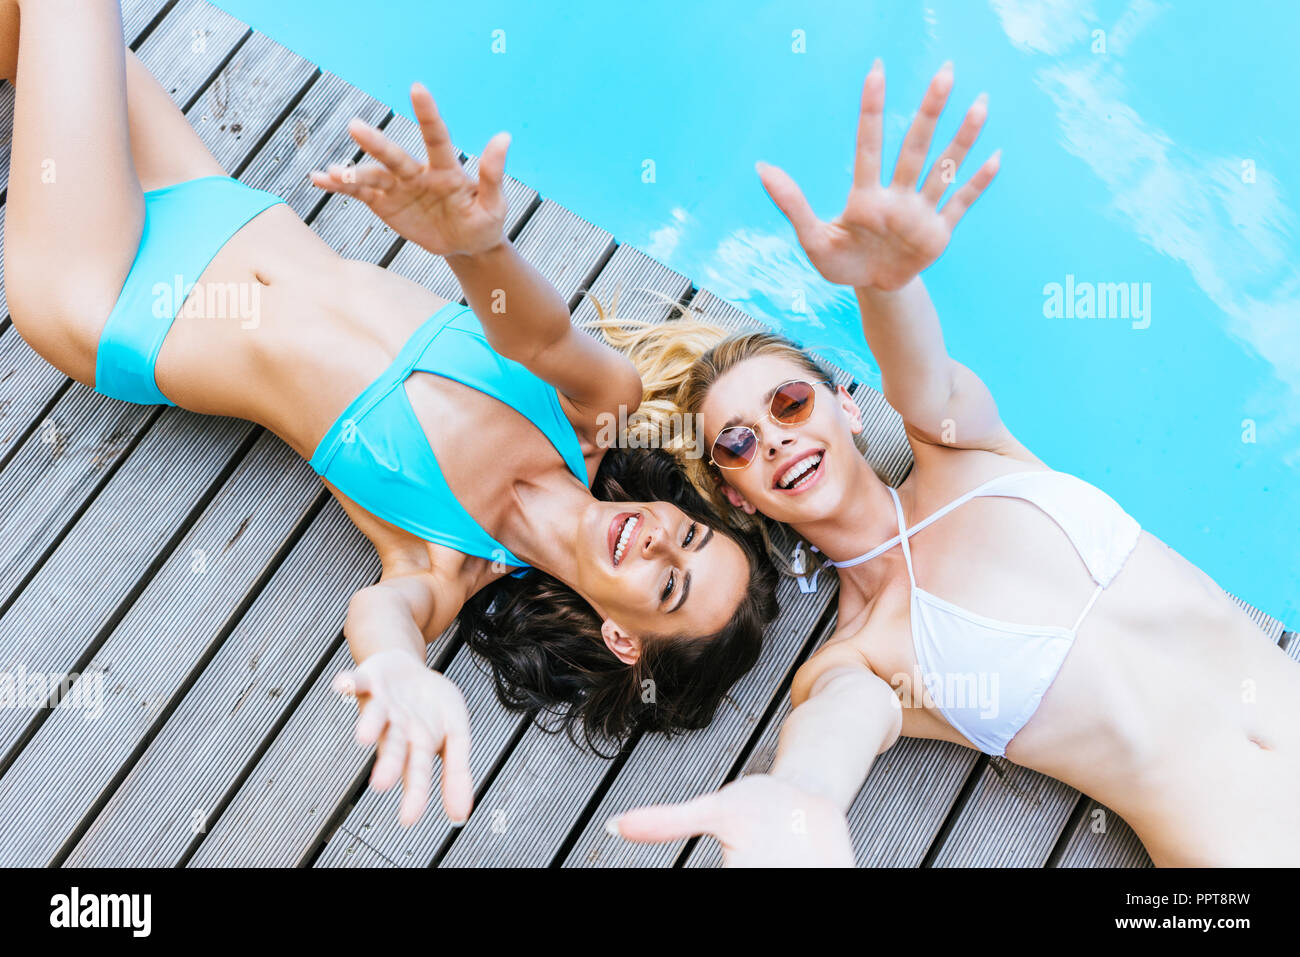 top view of happy young women in sunglasses and swimwear reaching arms and smiling at camera near pool - Stock Image